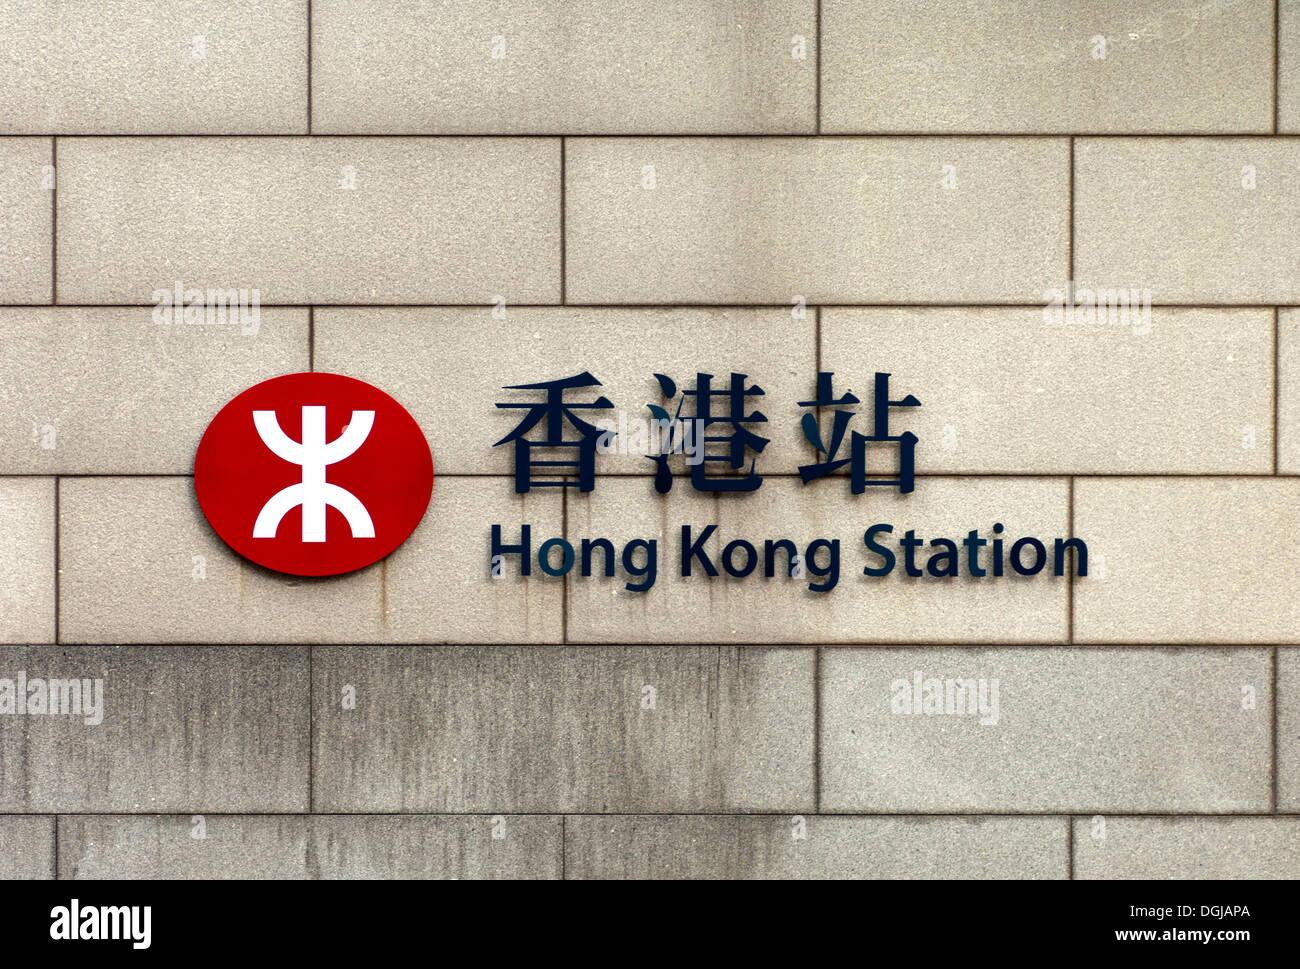 Sign of the underground station 'Hong Kong Station' in English and Chinese with the logo of the Mass Transit Railway, MTR - Stock Image